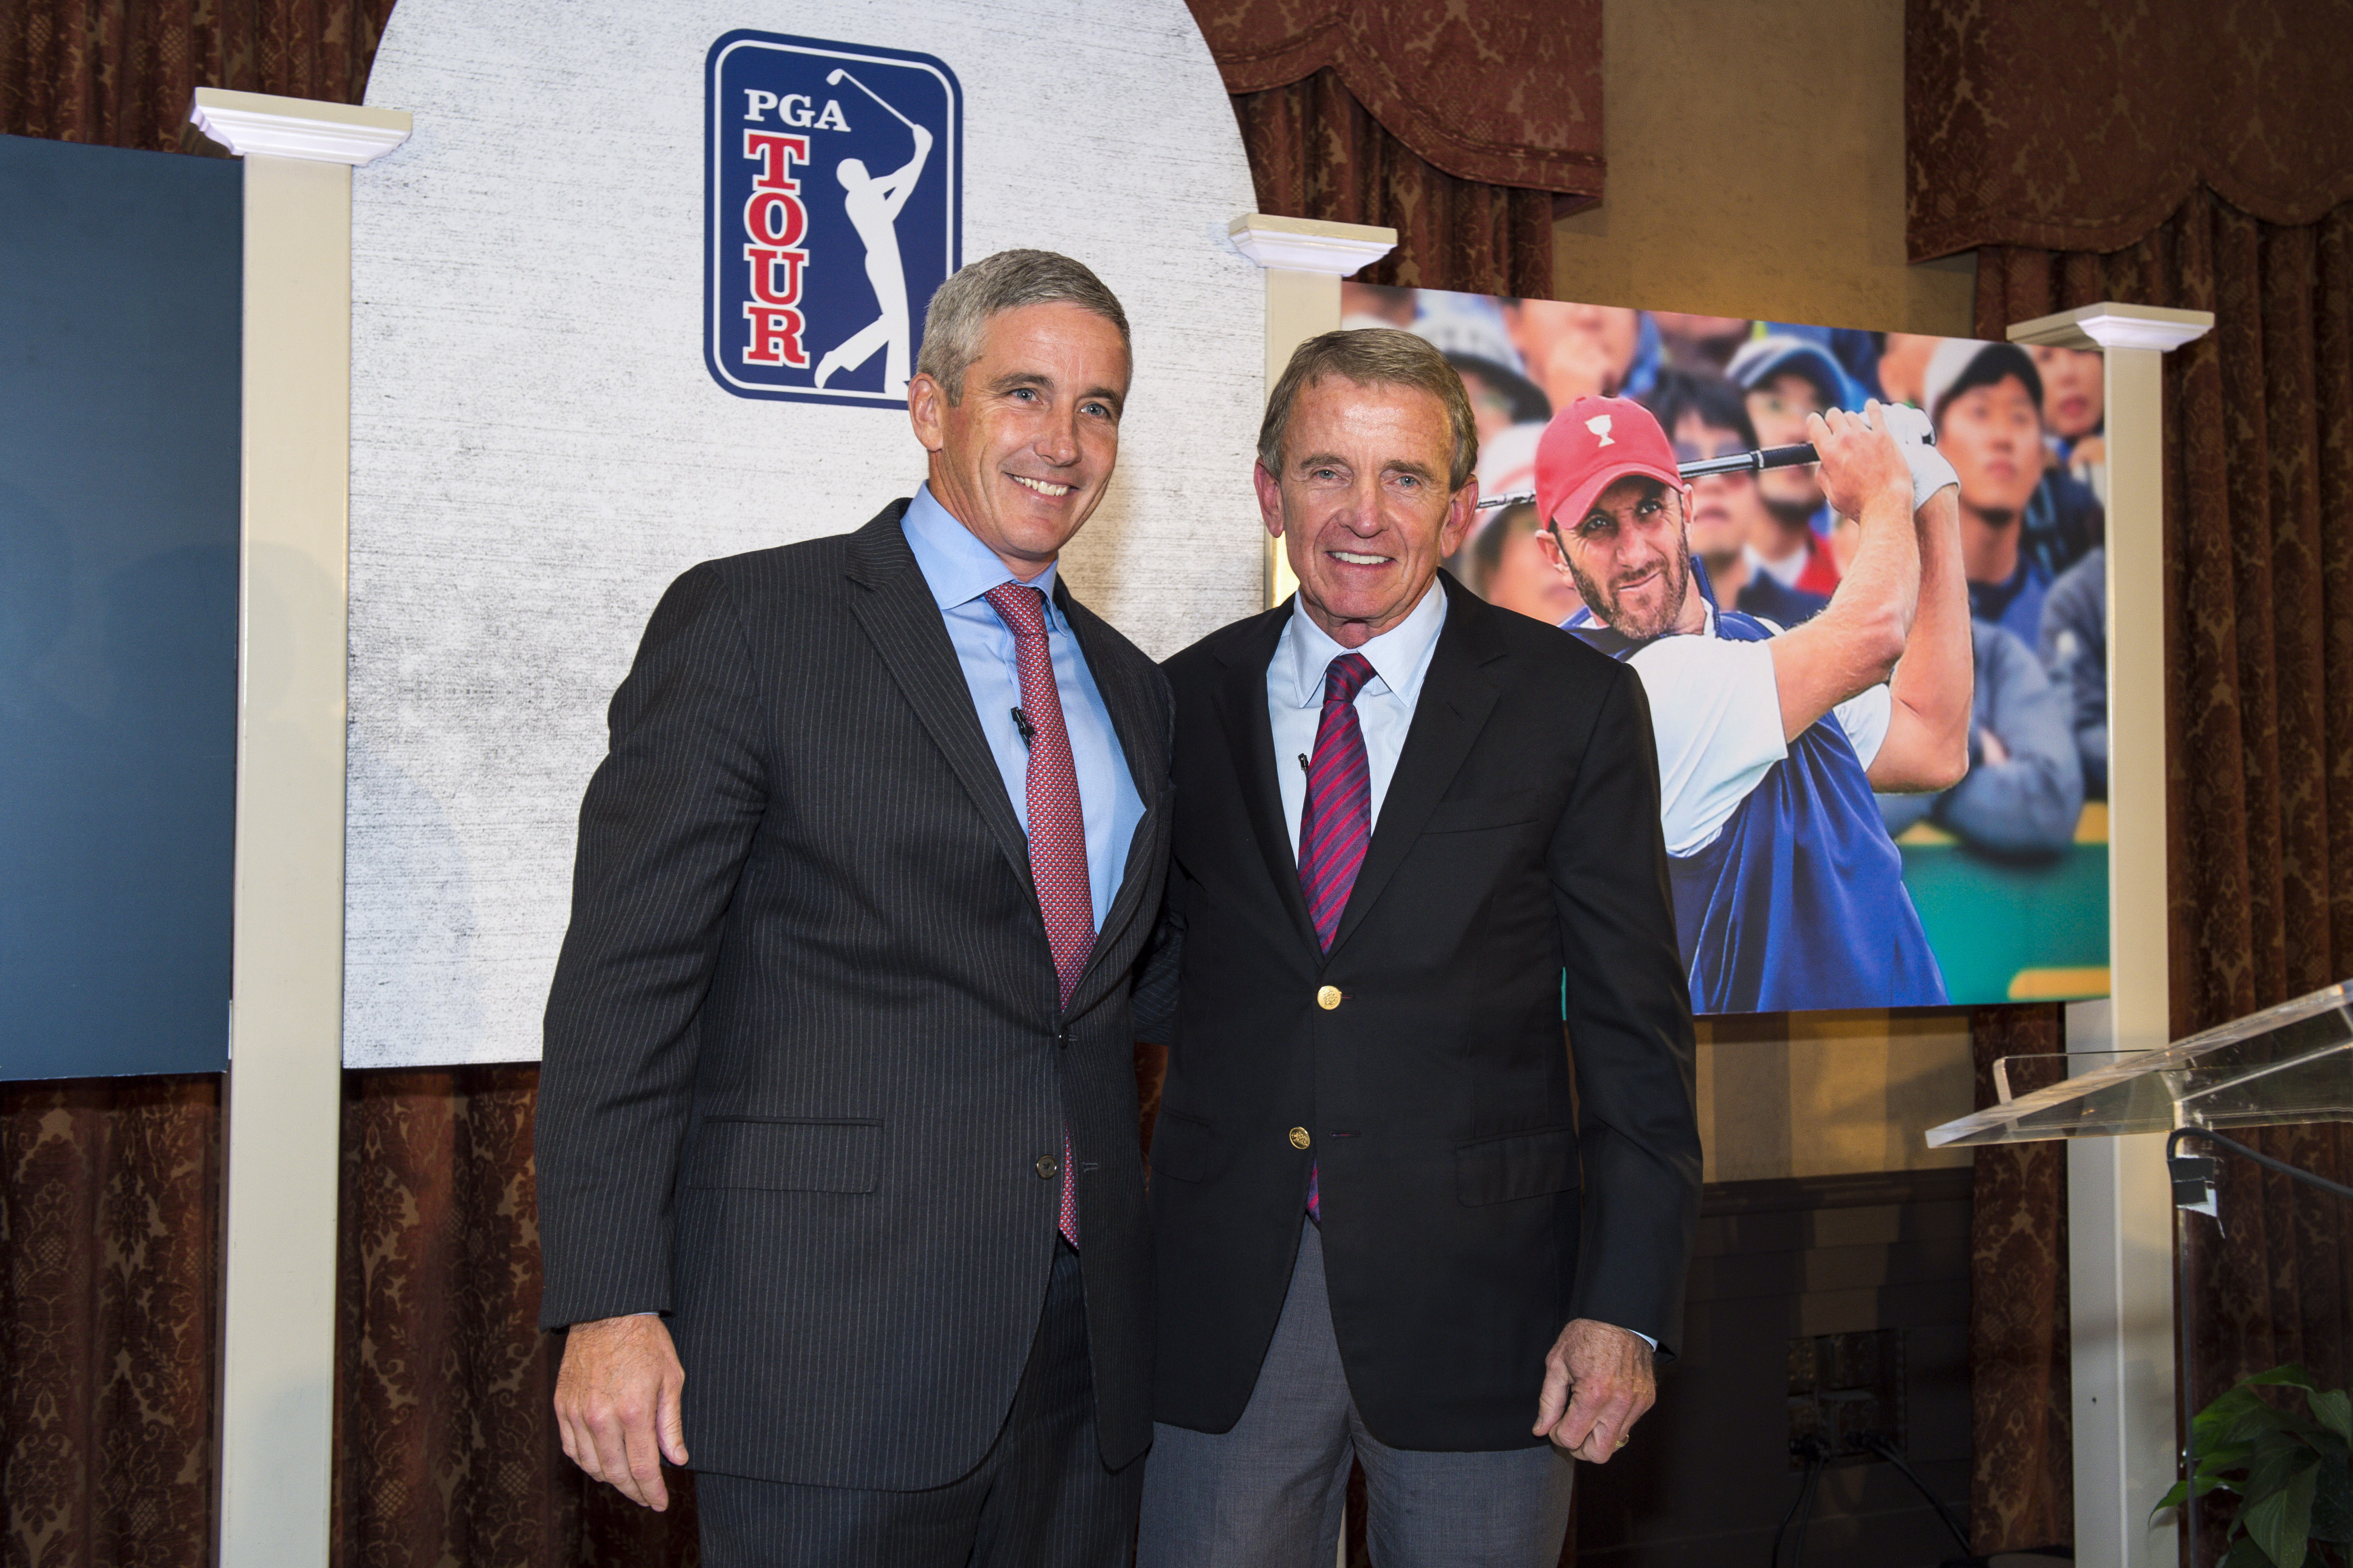 Jay Monahan (left) hopes to continue Tim Finchem's momentum as the new PGA Tour commissioner.